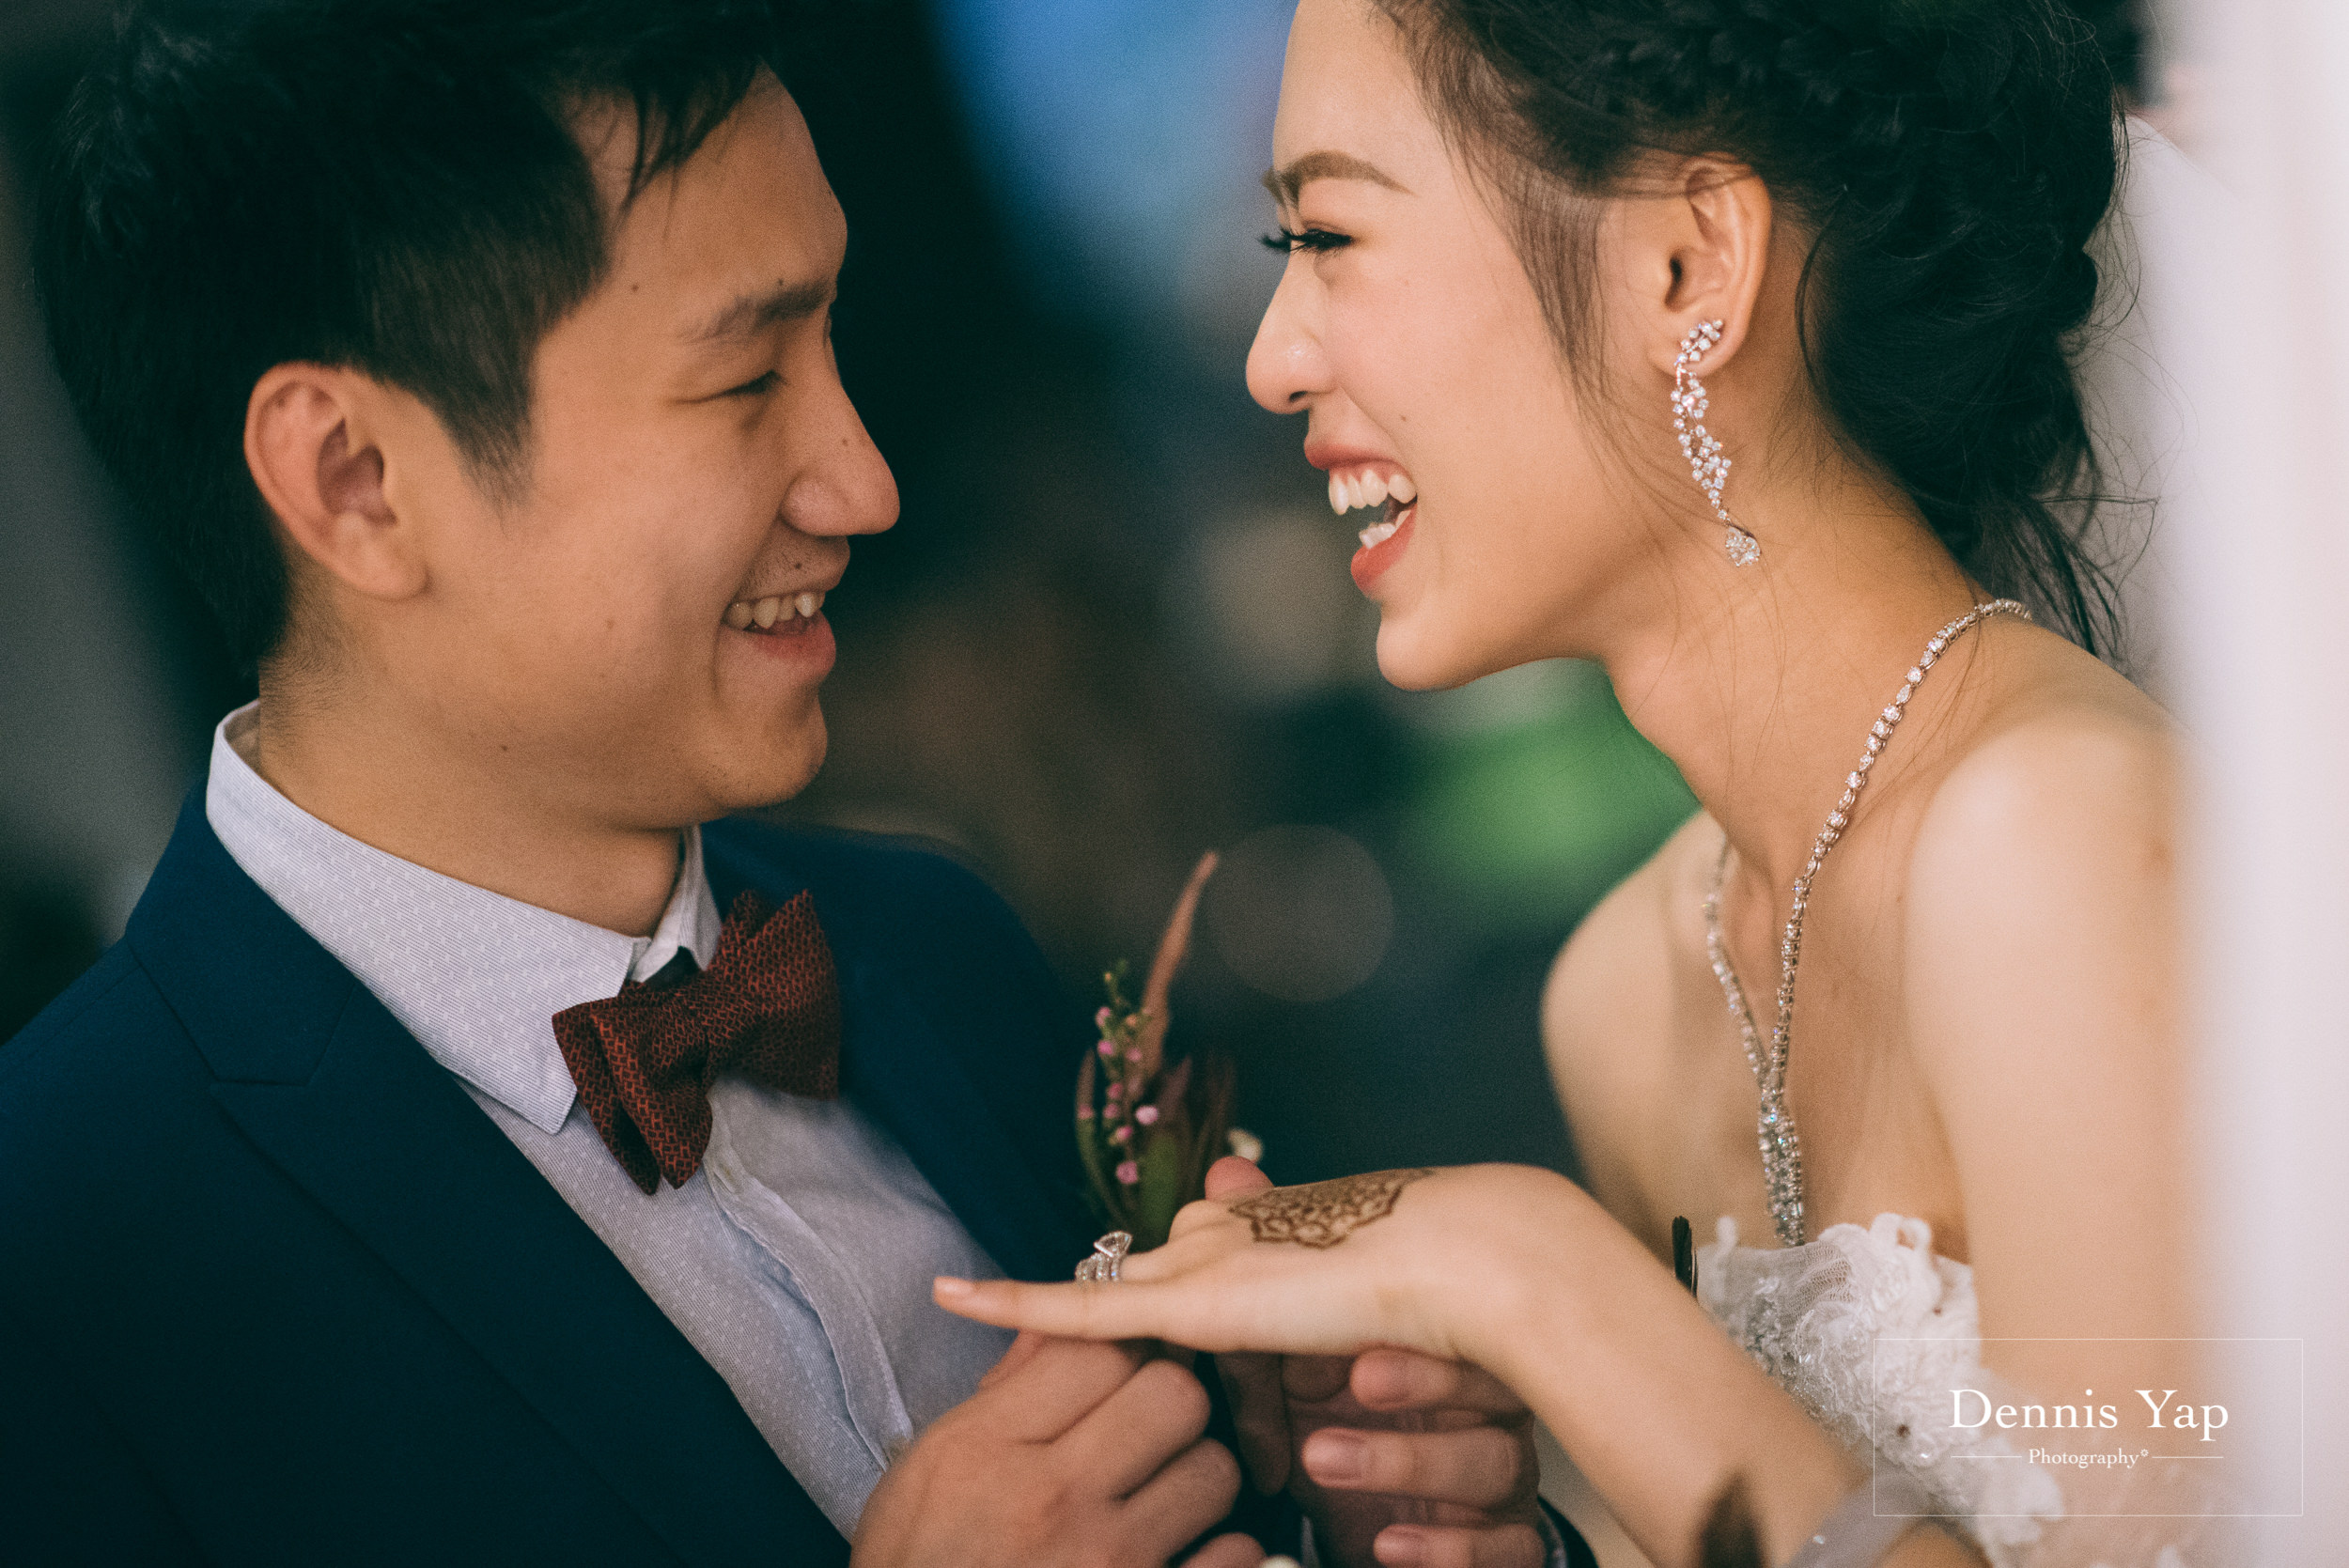 ser siang sze liang rom registration of marriage KL journal hotel dennis yap photography-22.jpg